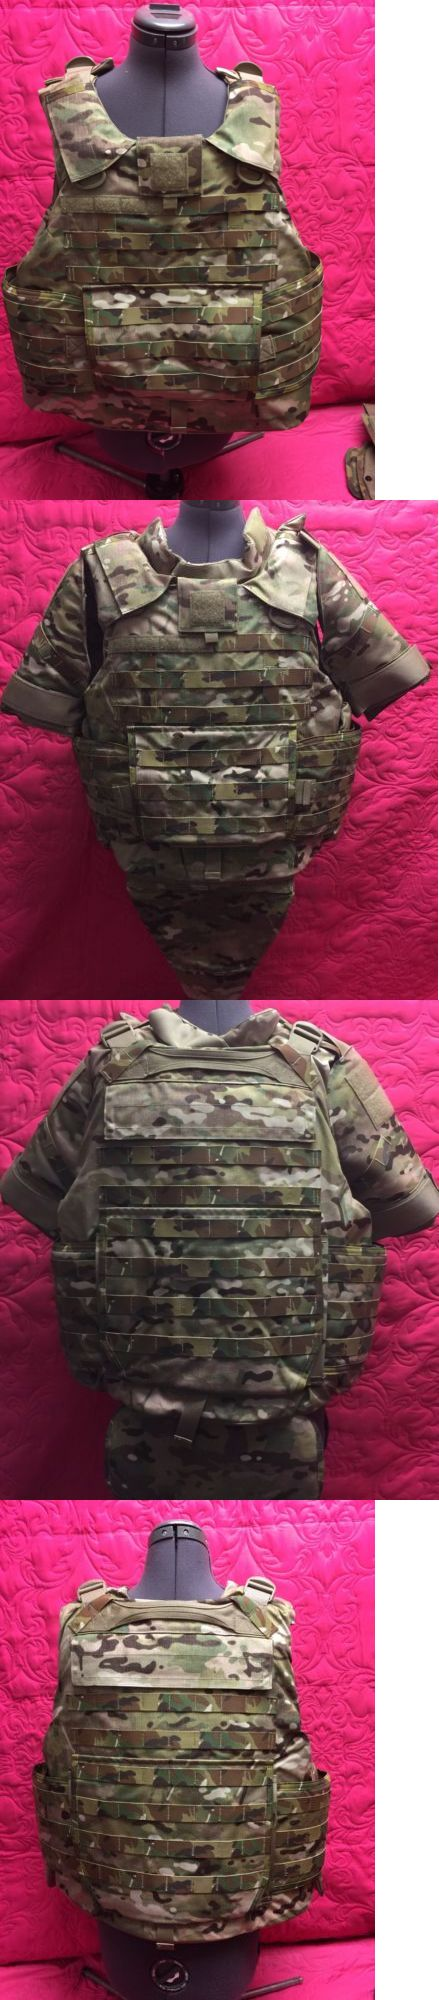 Chest Rigs and Tactical Vests 177891: Multicam Gen Iii Tactical Rav Plate Carrier Carter Industries Medium Regular -> BUY IT NOW ONLY: $299.99 on eBay!